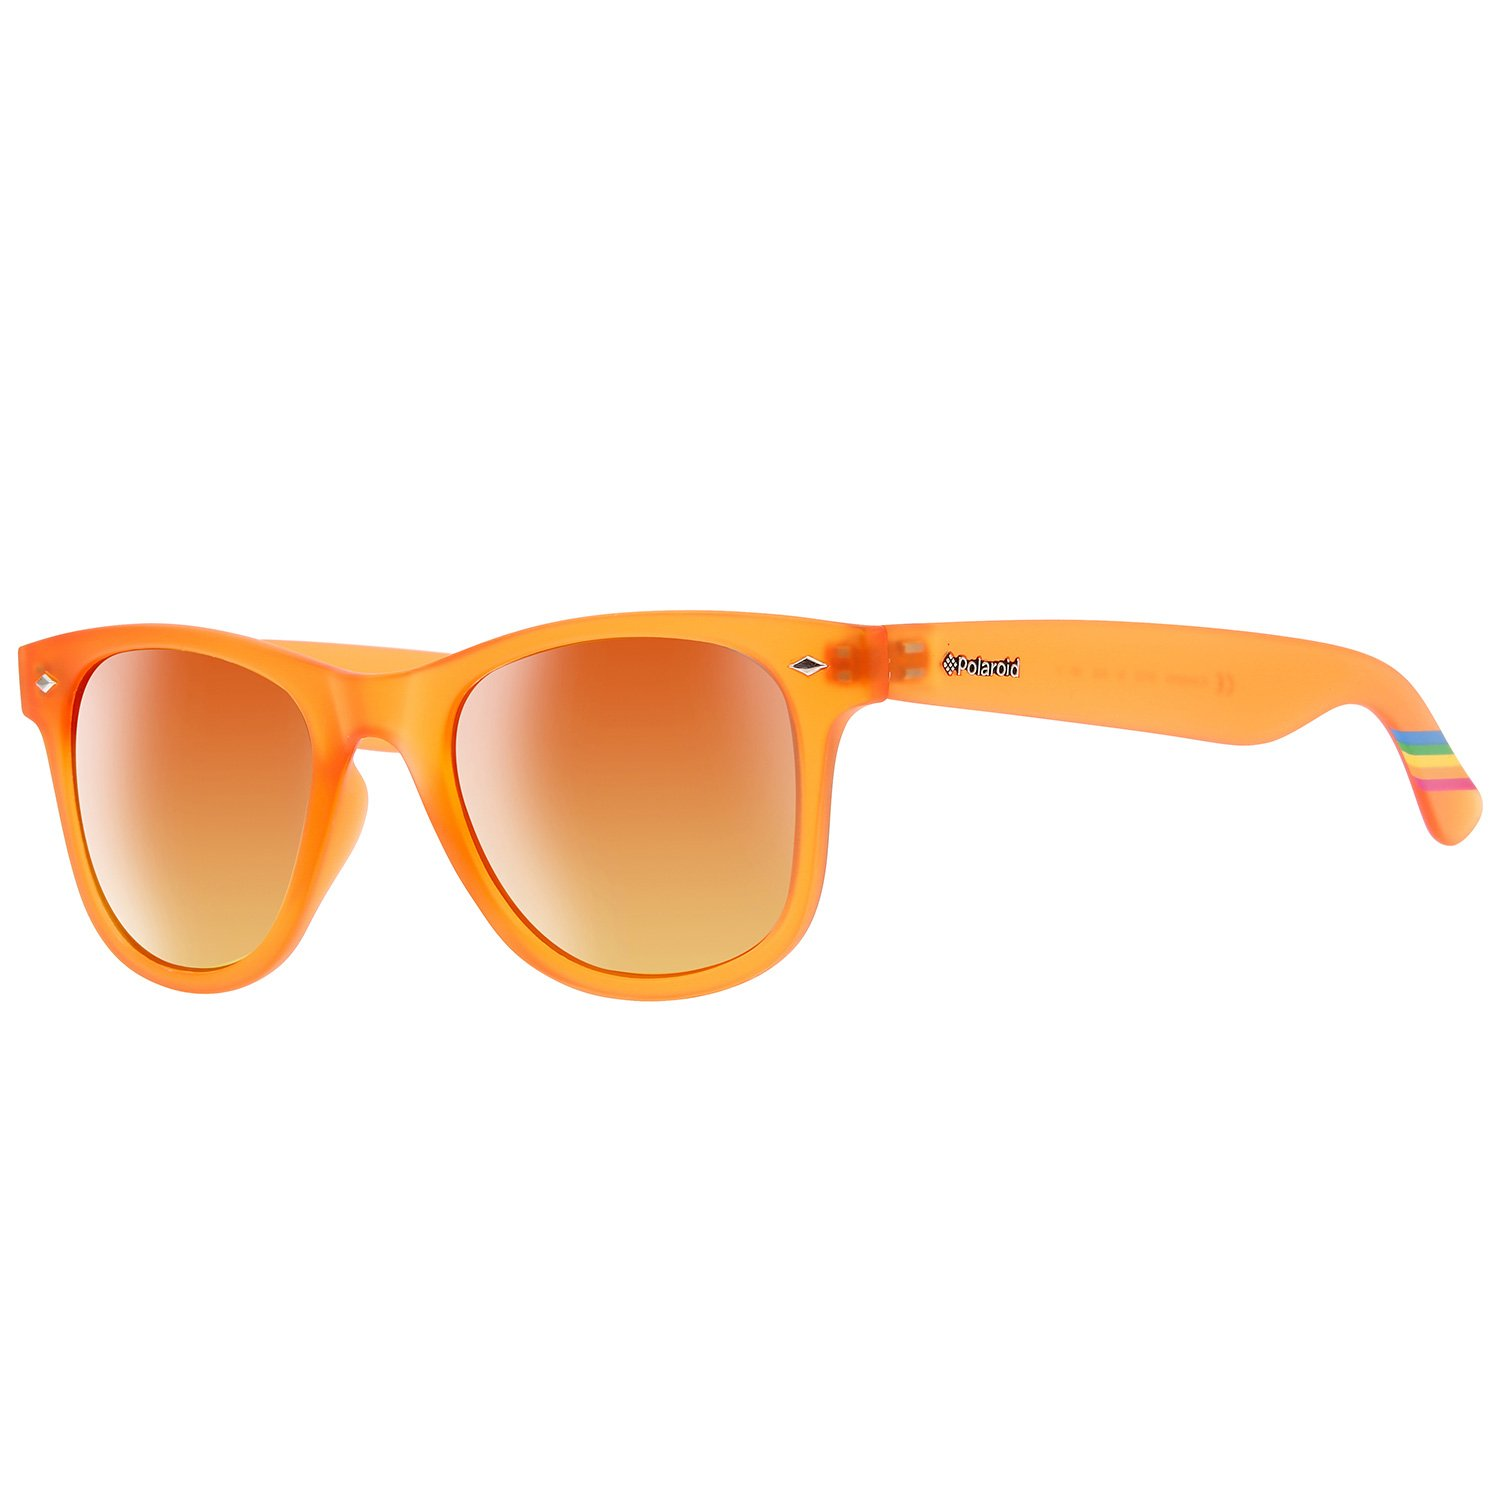 Polaroid Sunglasses PLD6009NM Wayfarer Polarized Sunglasses, Orange & Red Polarized, 50 mm Polaroid Sunglasses (Safilo Group) PLD6009/NMOZ_IMT-50